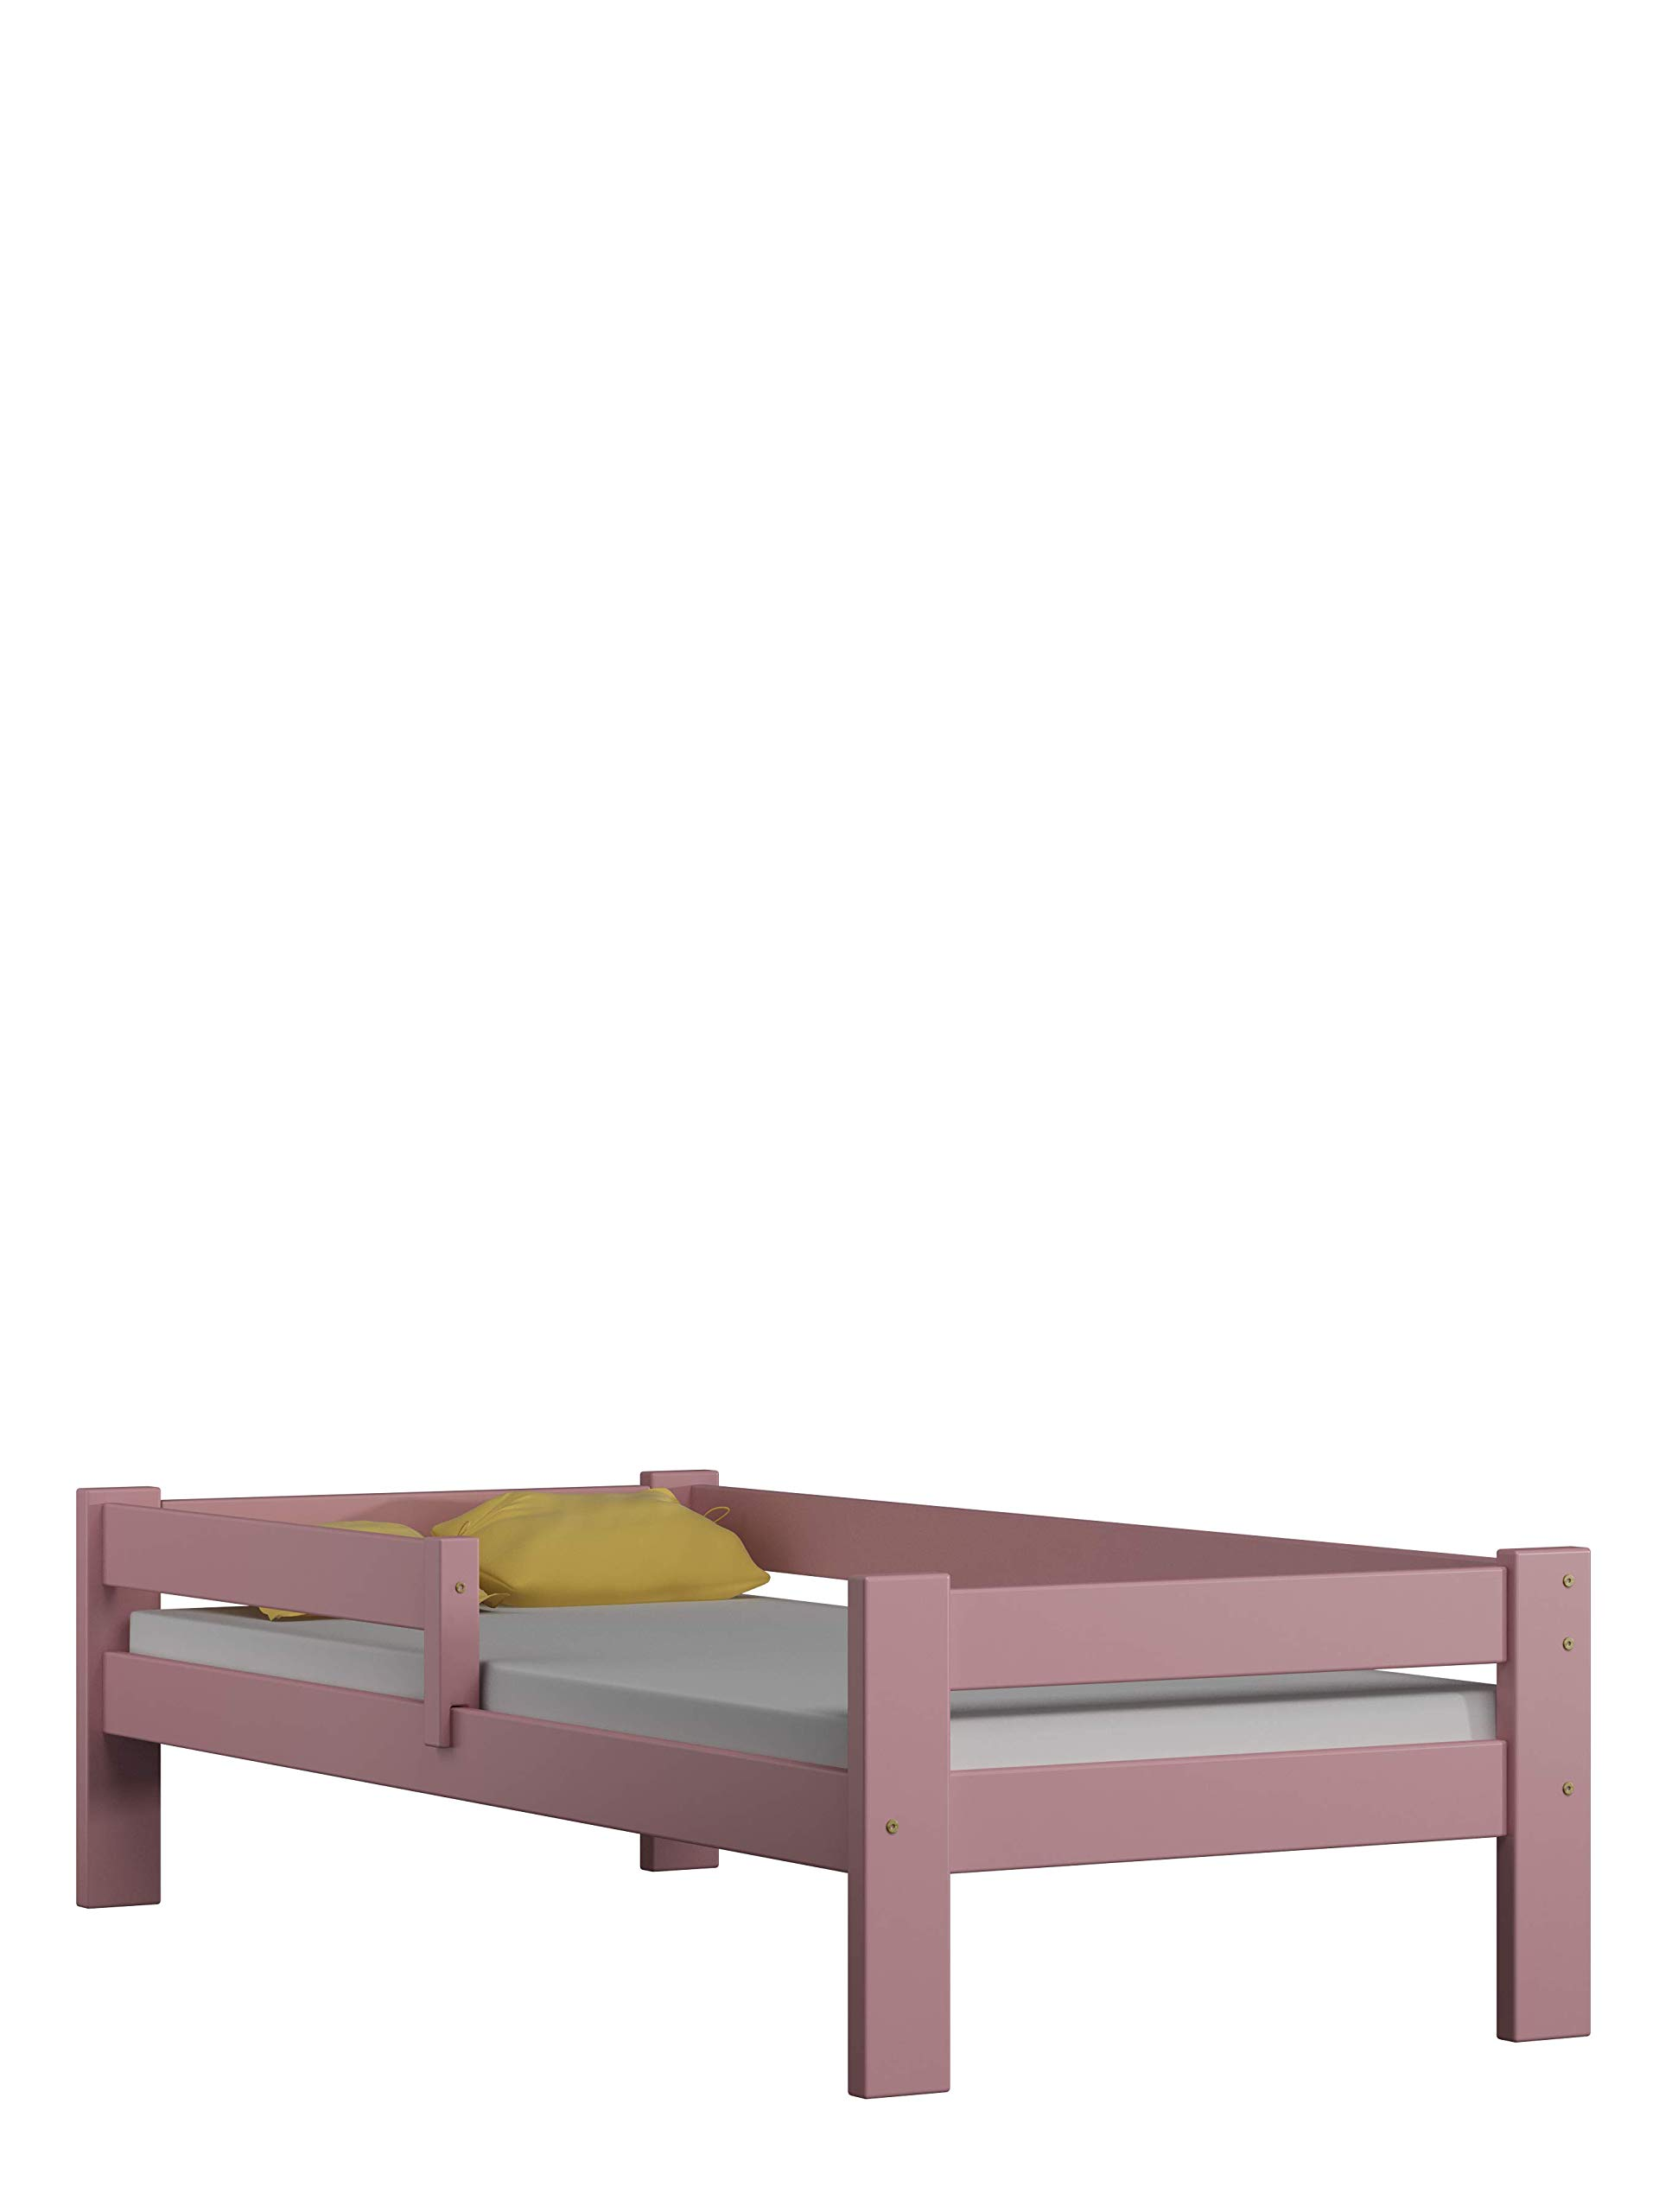 Children's Beds Home Solid Pine Wood Single Bed - Willow no Drawers no Mattress Included (160x80, Pink) Children's Beds Home Internal Dimensions in cm's are 140x70, 160x80, 180x80, 180x90, 190x90, 200x90 (External: 147x78, 167x88, 187x88, 187x98, 197x98, 207x98) Total height up to the top of the safety barrier is 51cm Universal bed entrance - left or right side. Front barrier can also be removed at a later stage. Bed Frame has load capacity of up to 190kg 1